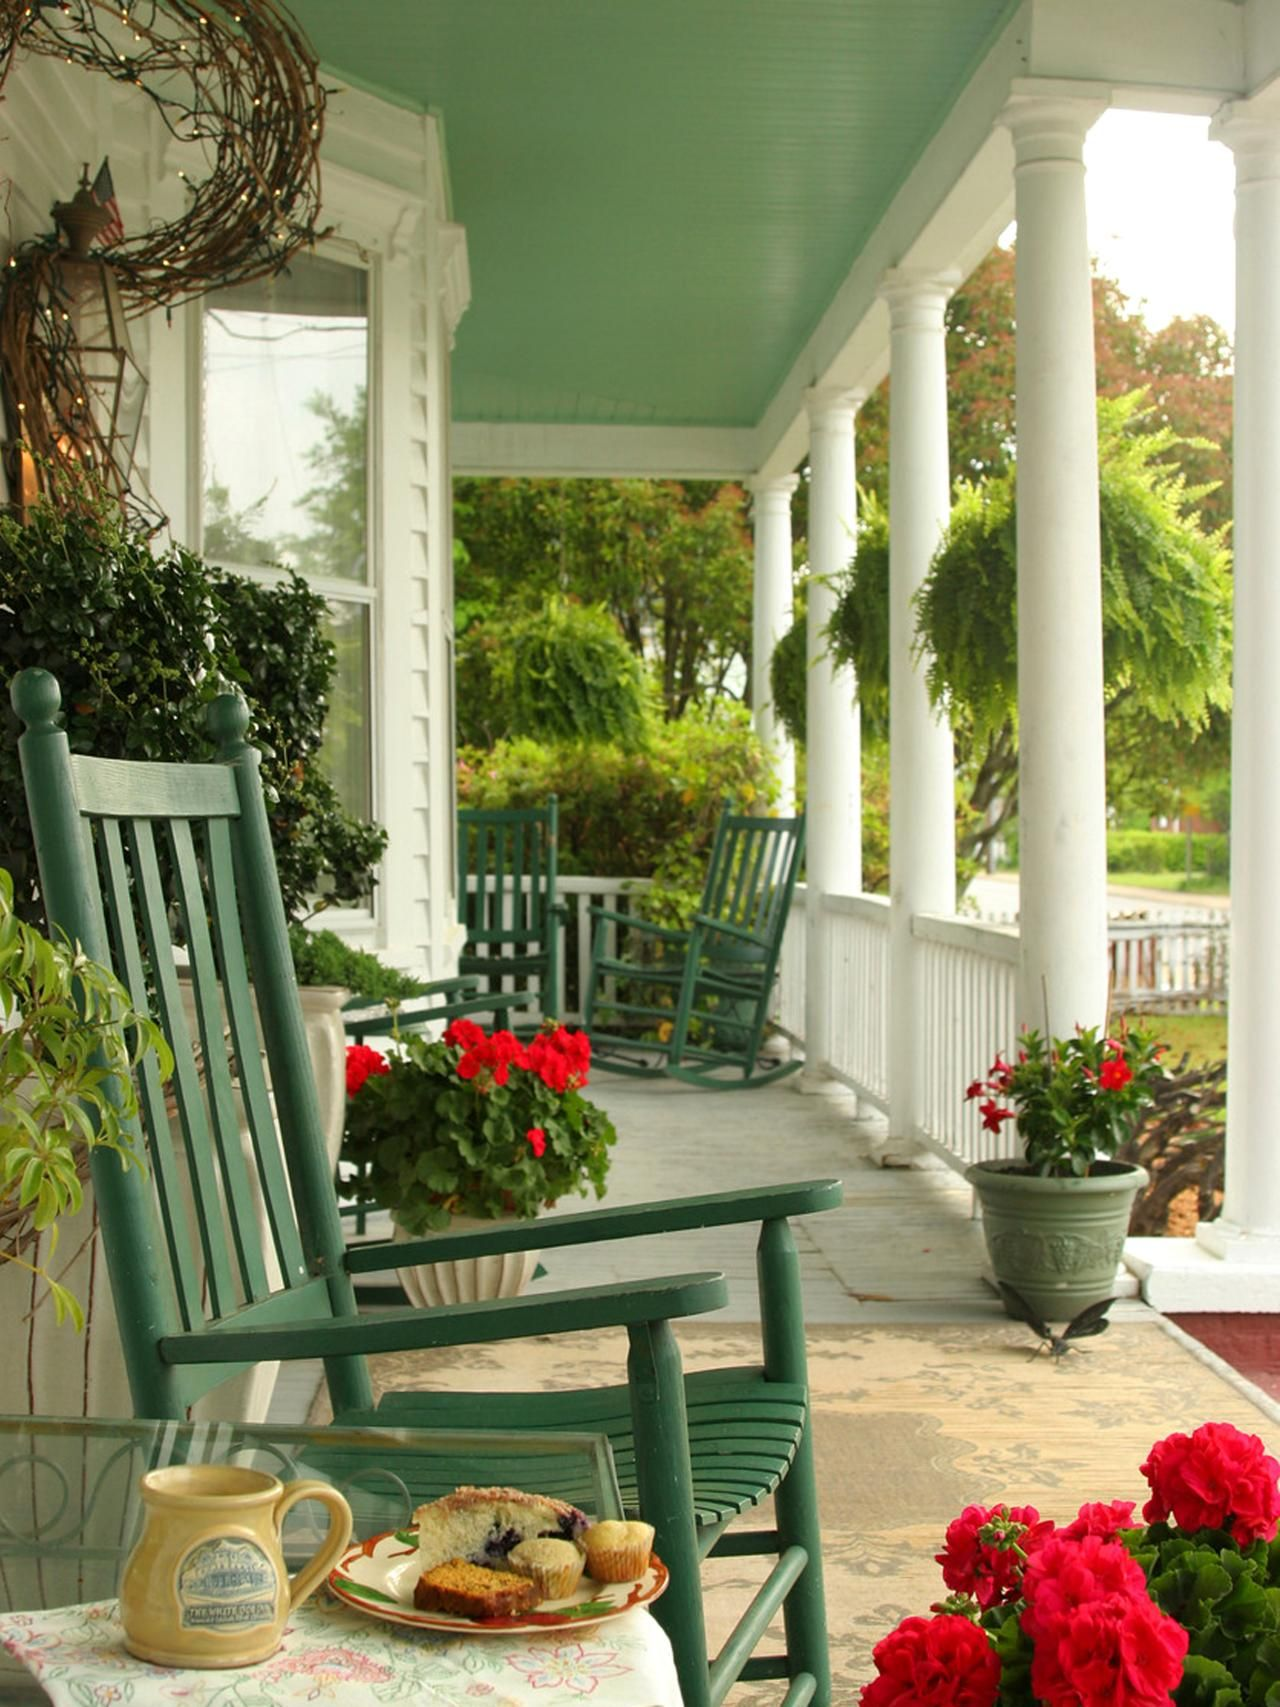 Porch Design Ideas porch design ideas 10 Porch Design Ideas 18 Great Traditional Front Porch Design Ideas